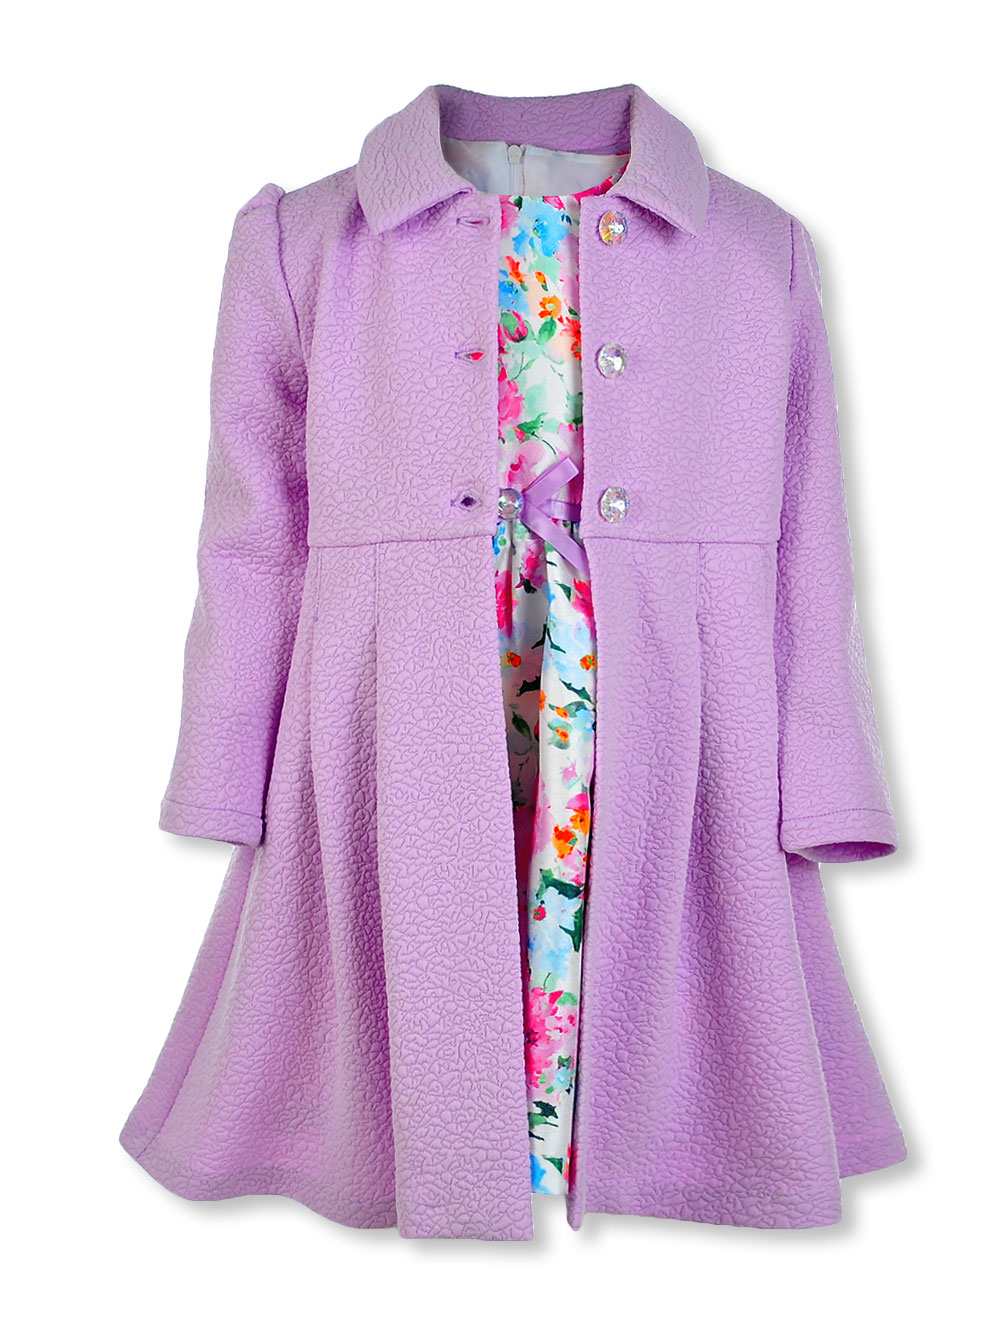 Girls Lavender Casual Dresses